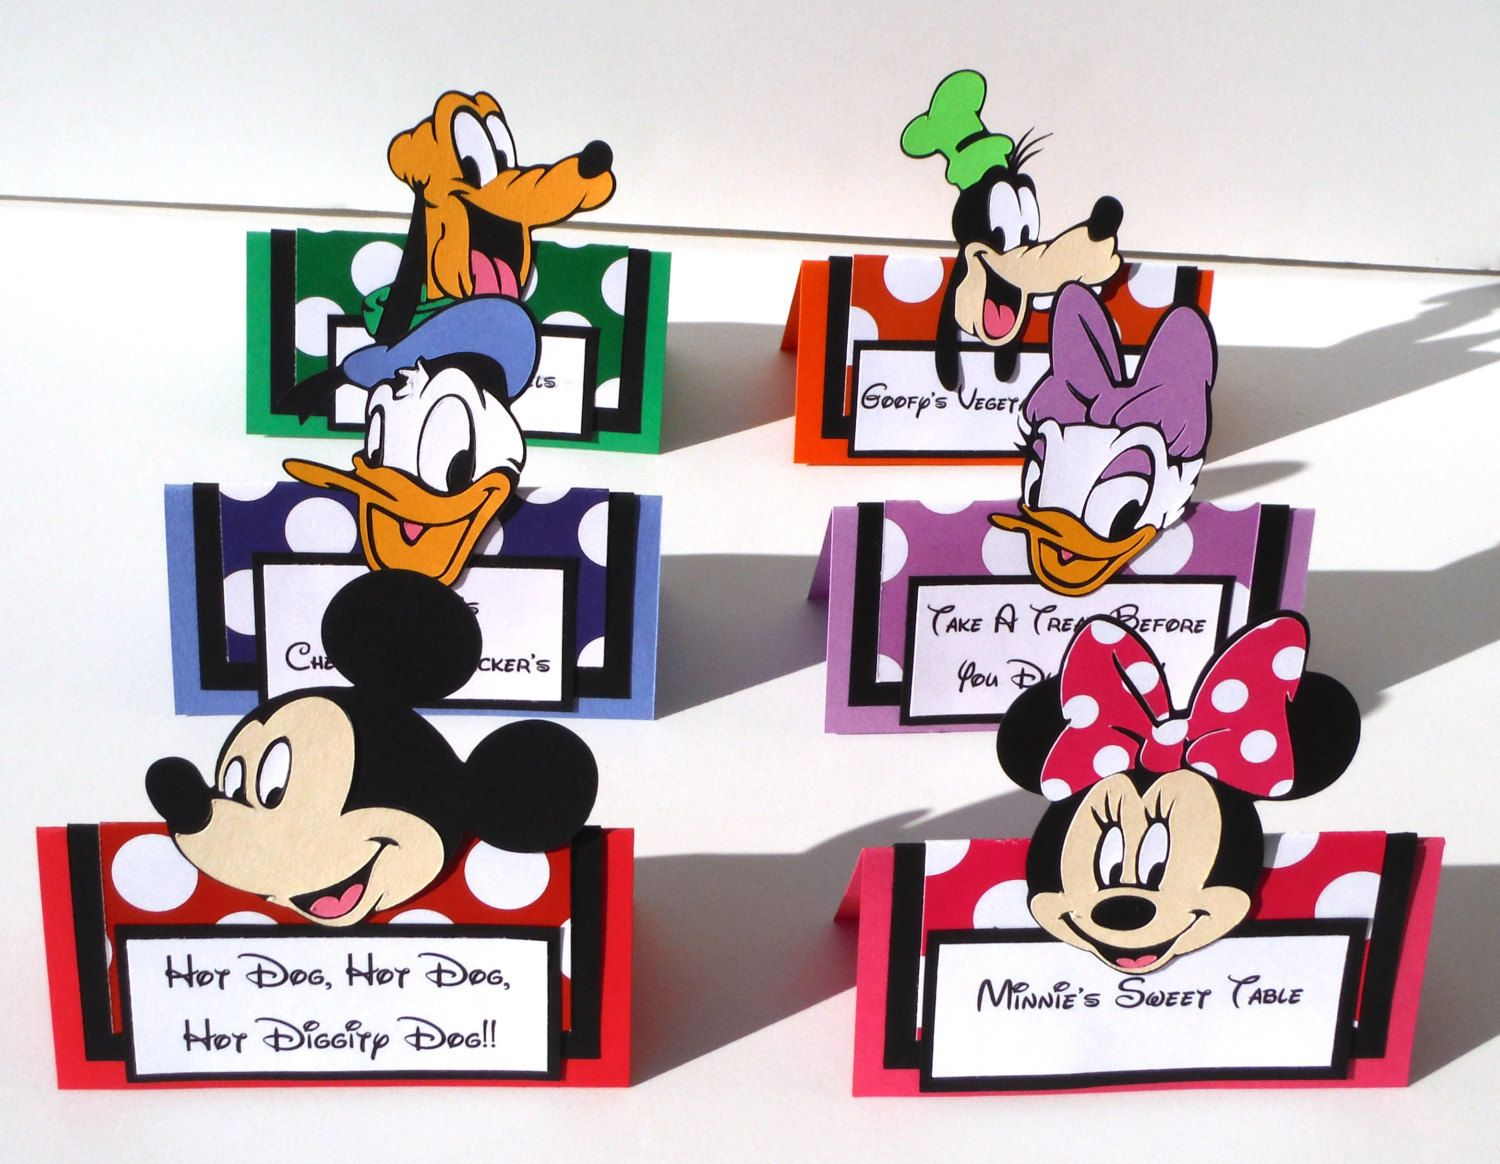 6 Mickey Mouse Clubhouse Themed Tent Style Food Table Labelu0027s / Name Cards Minnie Donald Daisy Goofy Pluto  sc 1 st  Pinterest : mickey tent - memphite.com